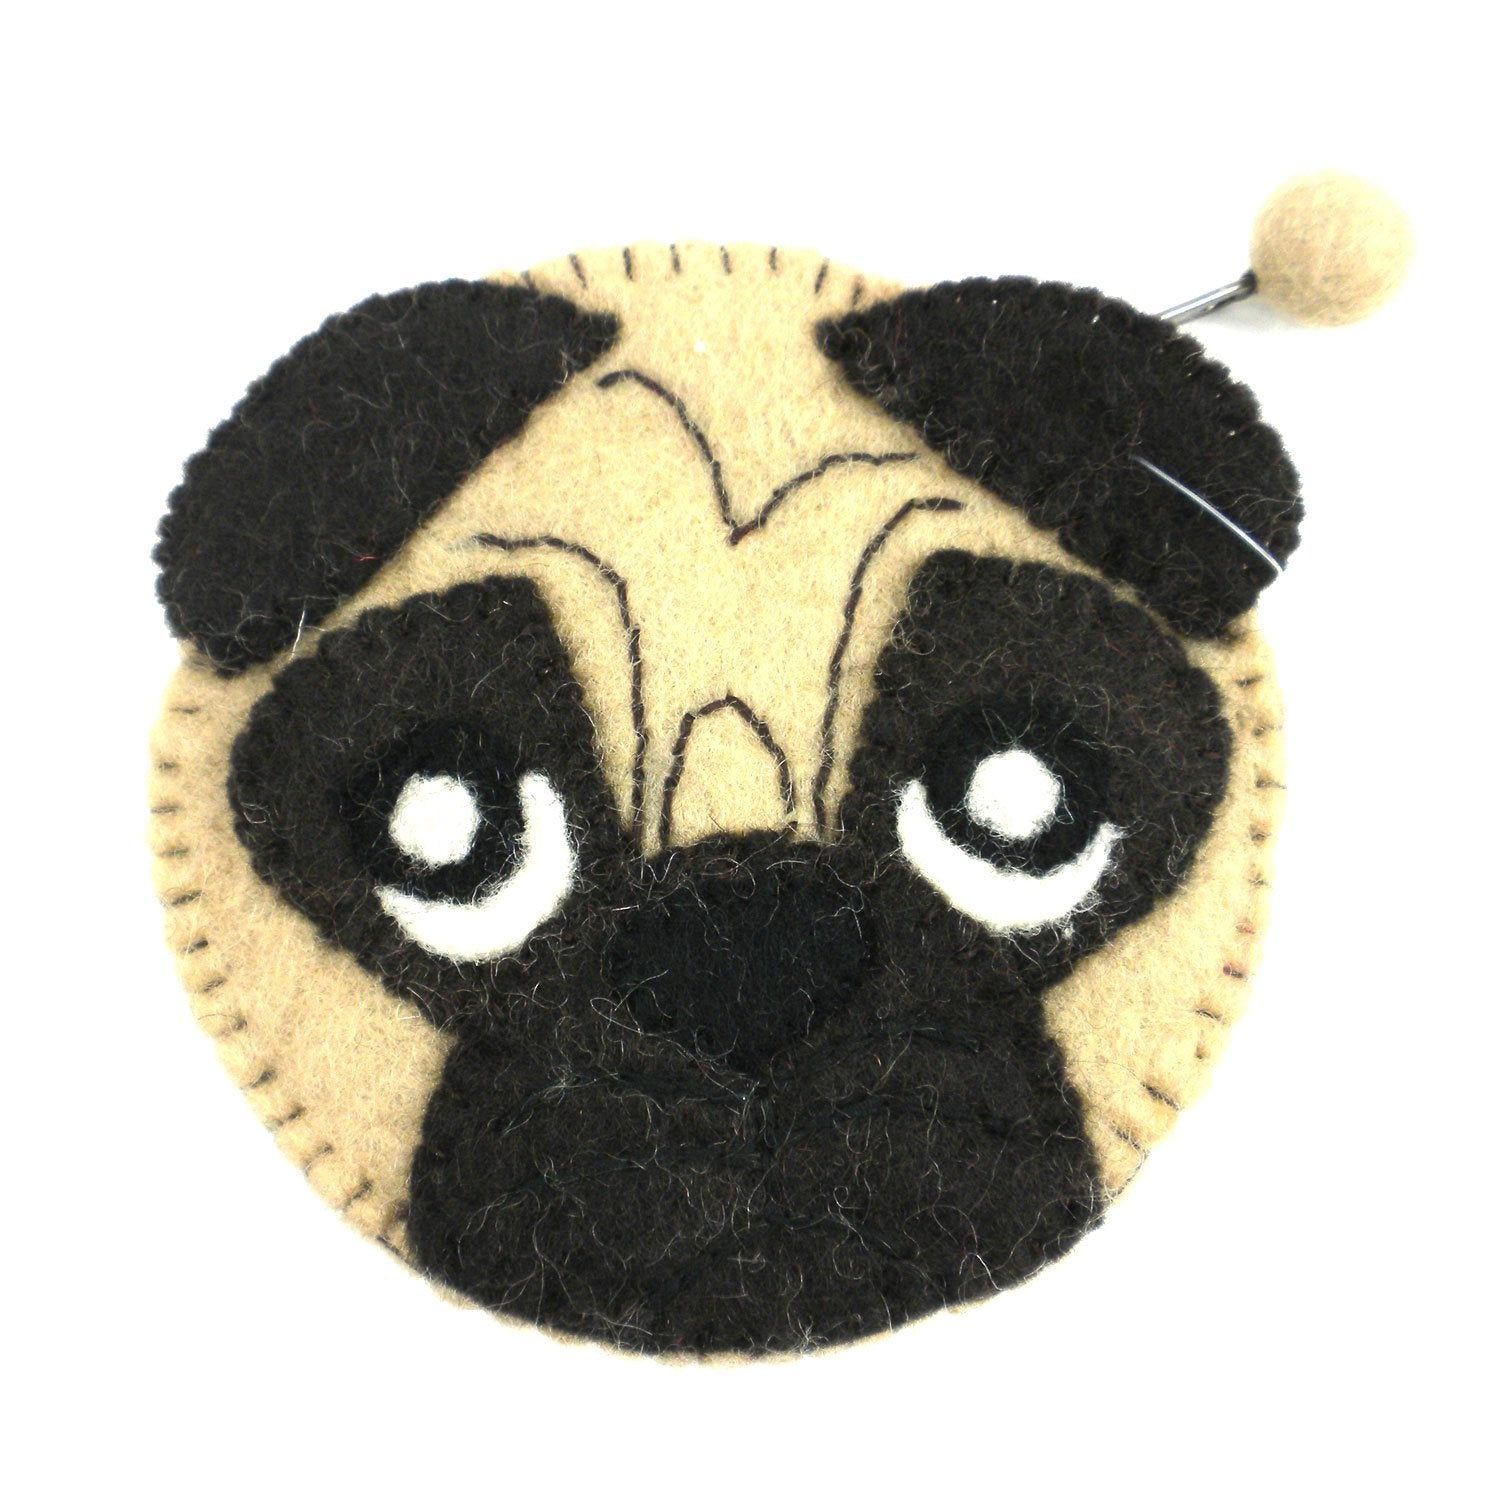 Pug Puppy Felt Coin Purse